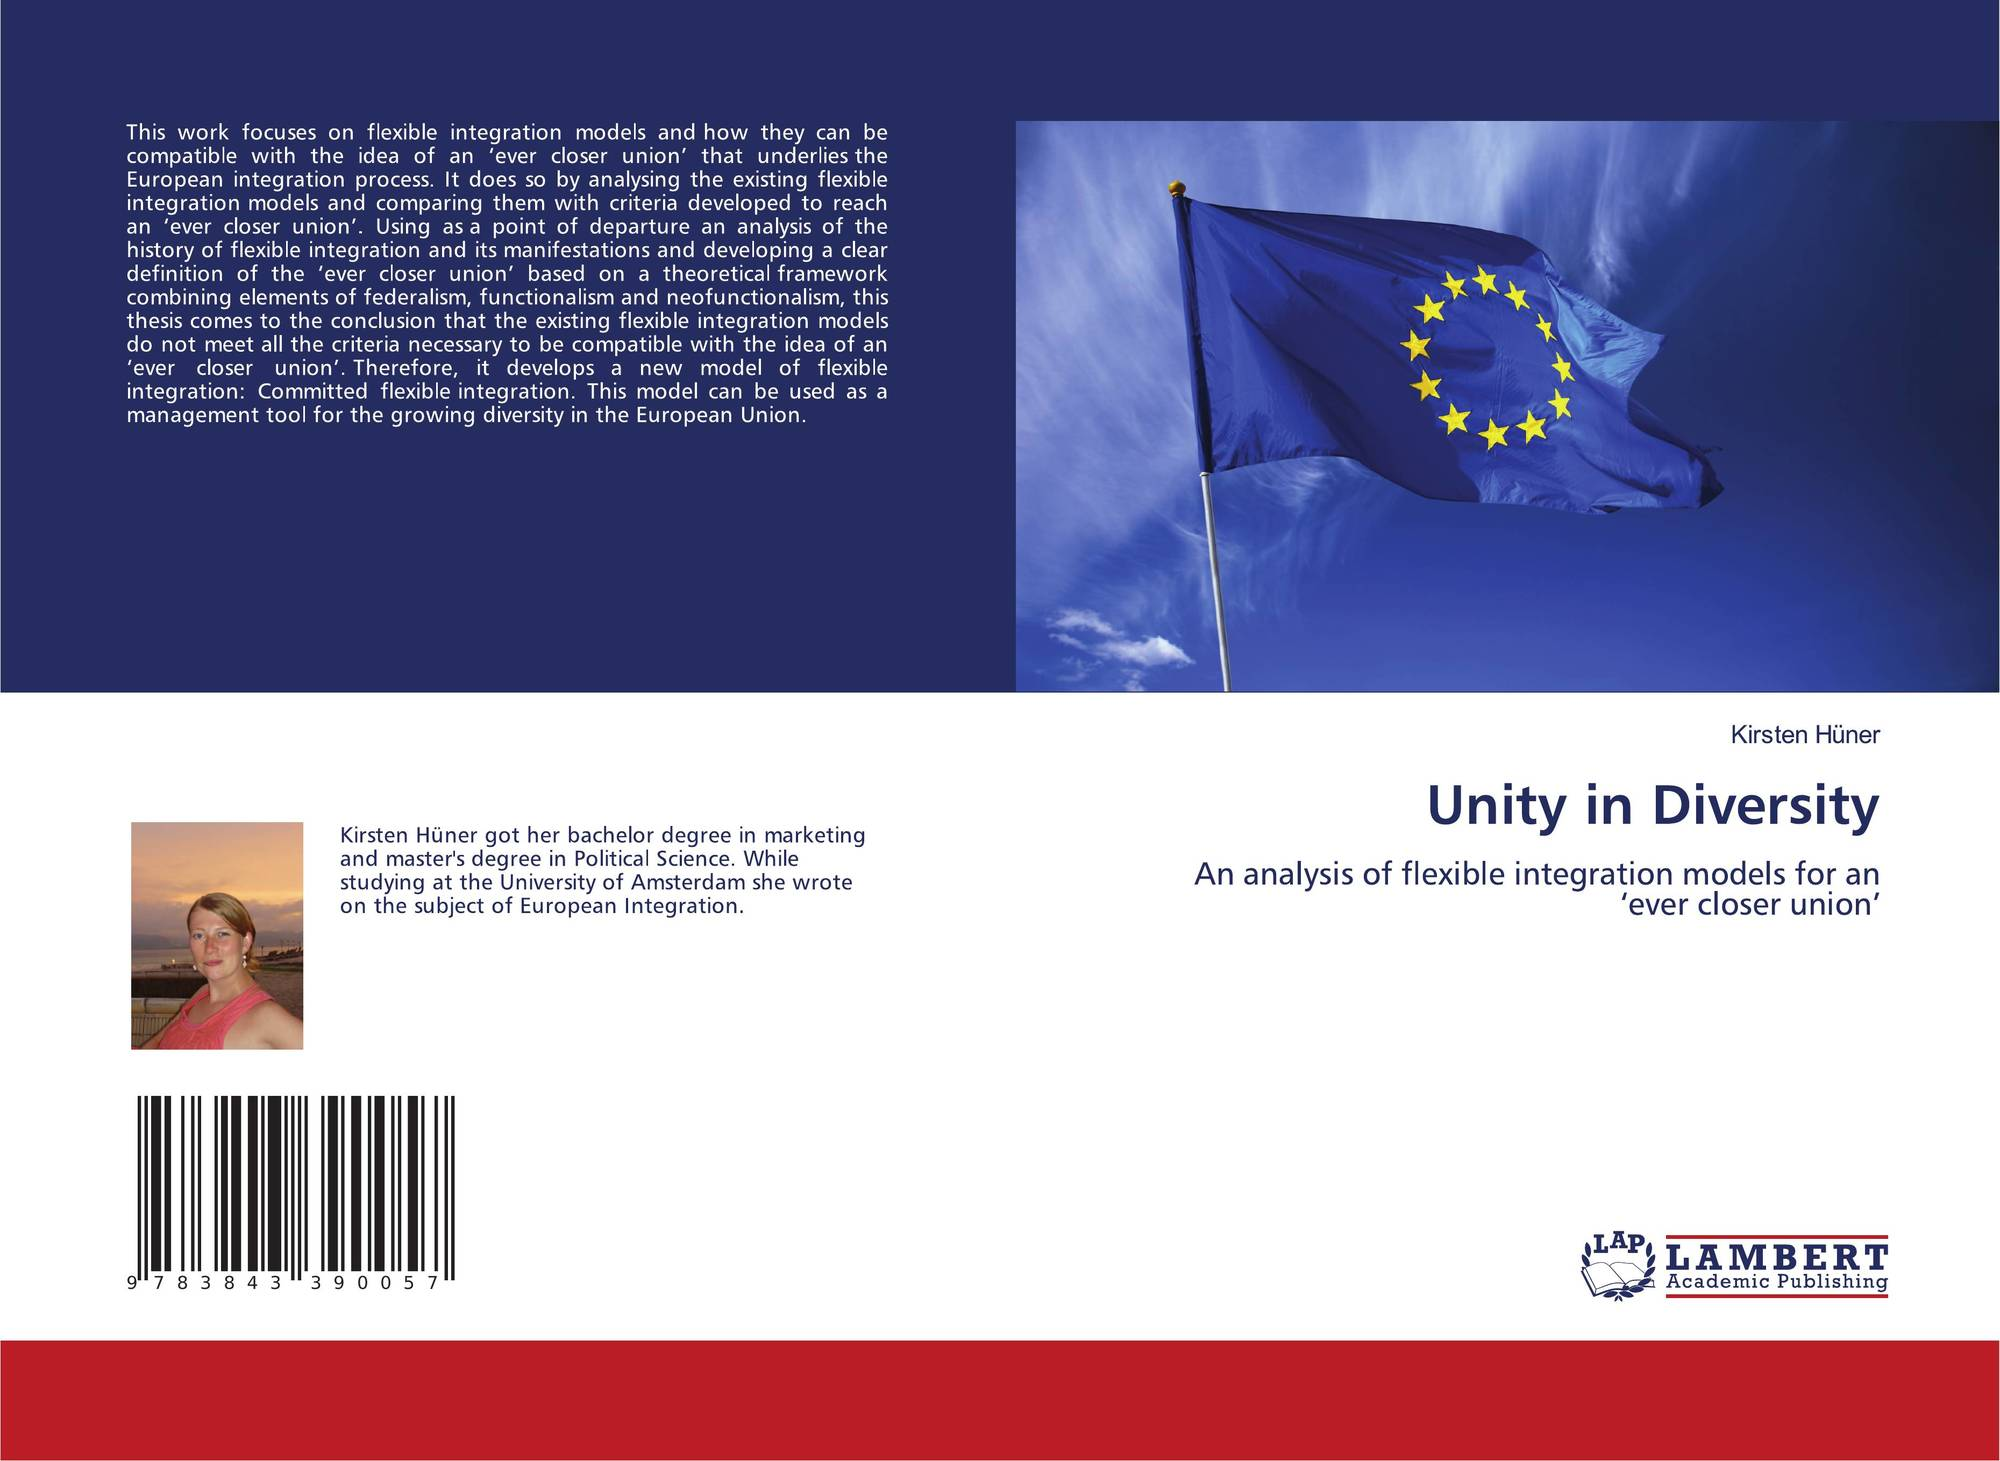 an analysis of the role of neo functionalism and intergovernmentalism to european integration in the Integrating integration theory 227 place that allow the participation of non-state actors and, to some degree, even hierarchical governance the paper looks first into the common roots of neo-functionalism and regime.